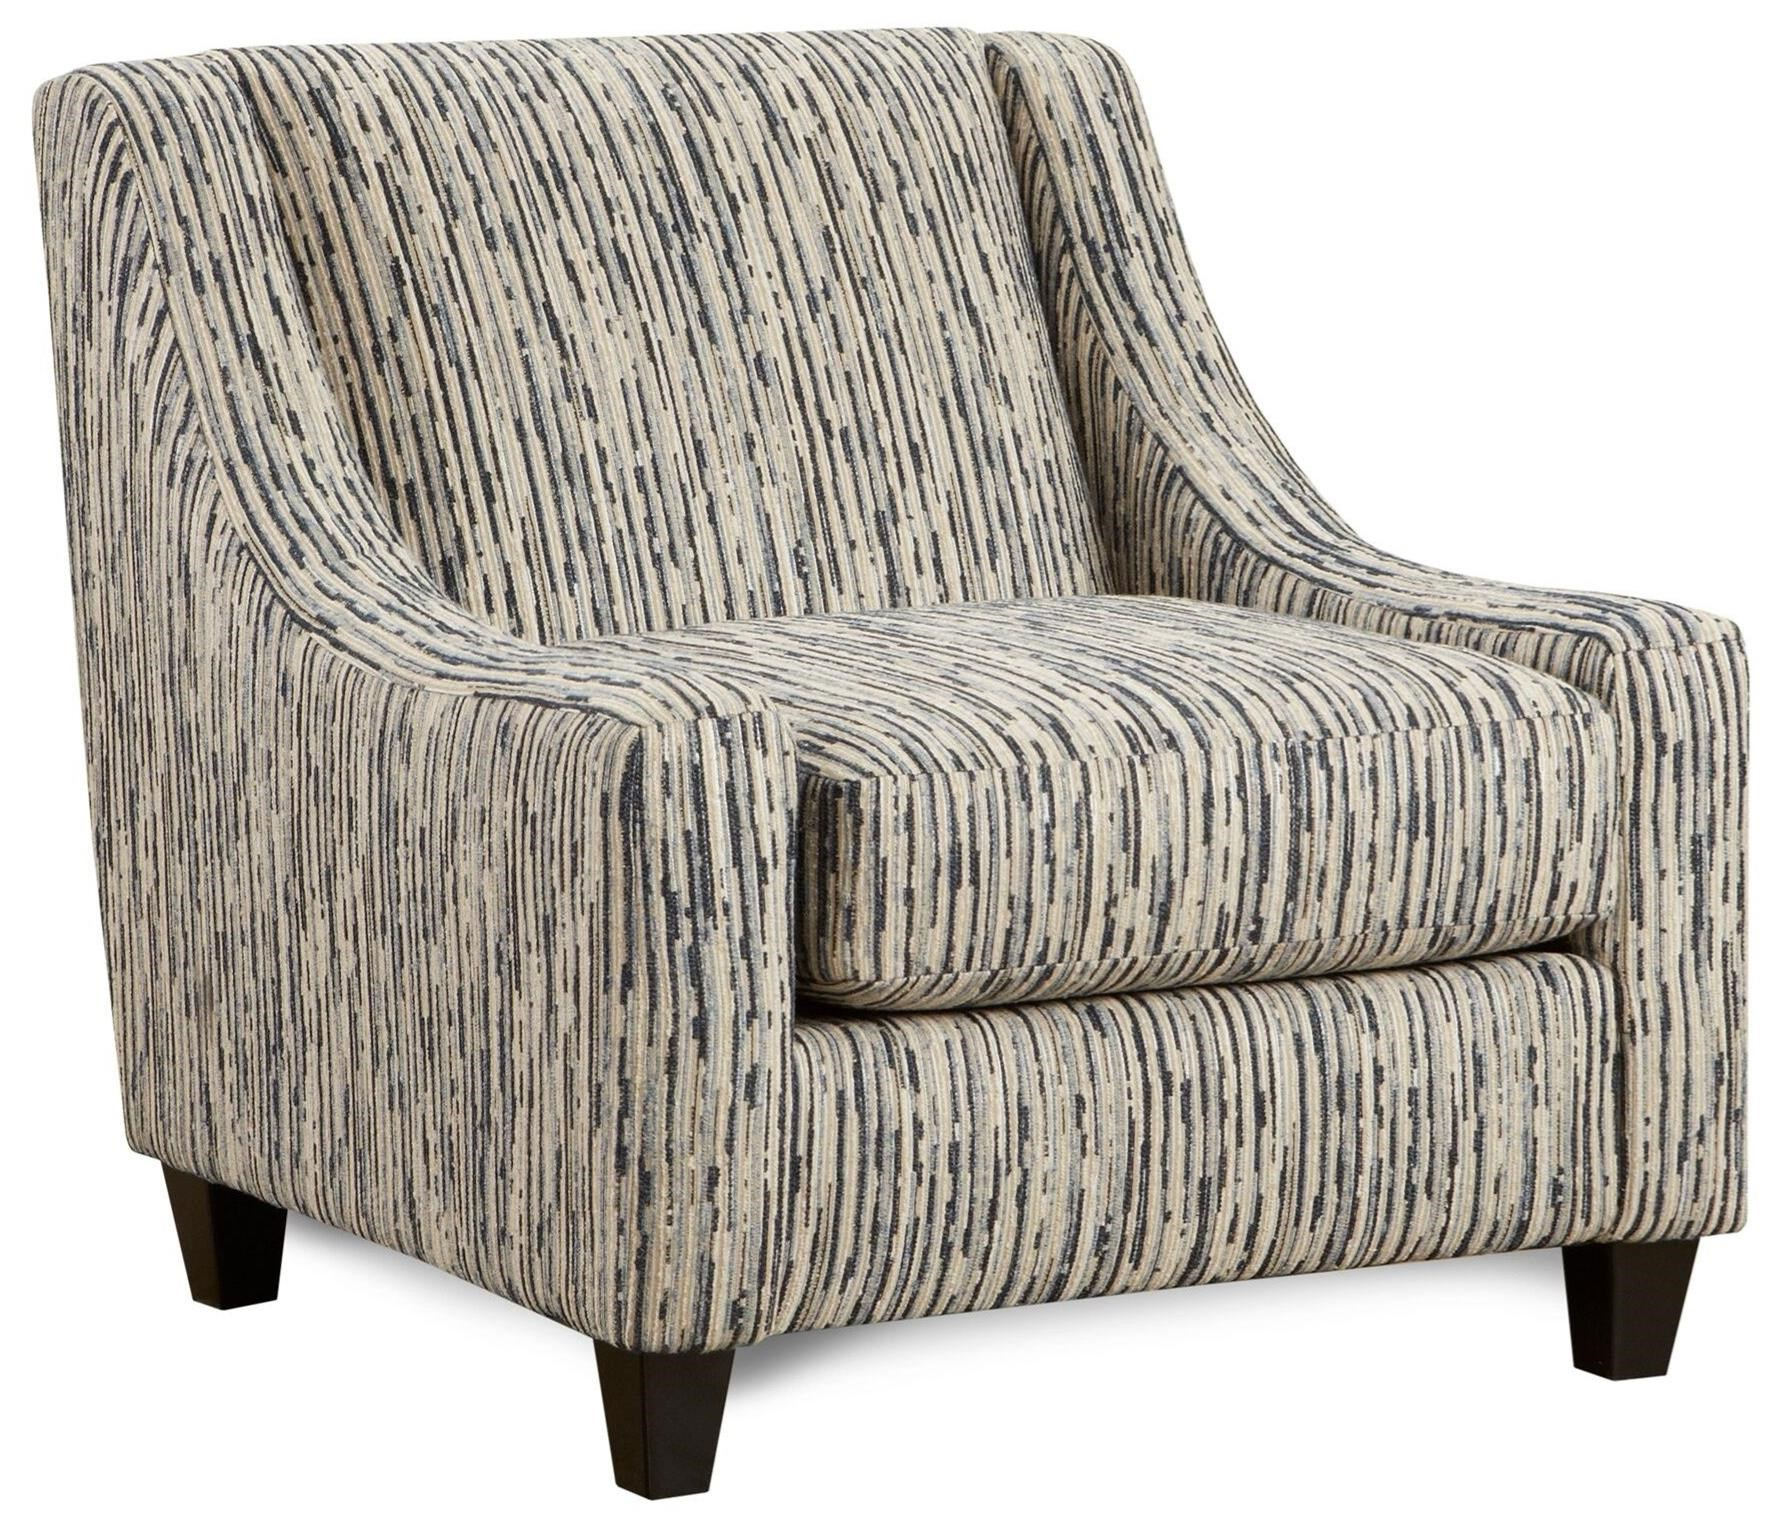 552 Accent Chair by Fusion Furniture at Prime Brothers Furniture